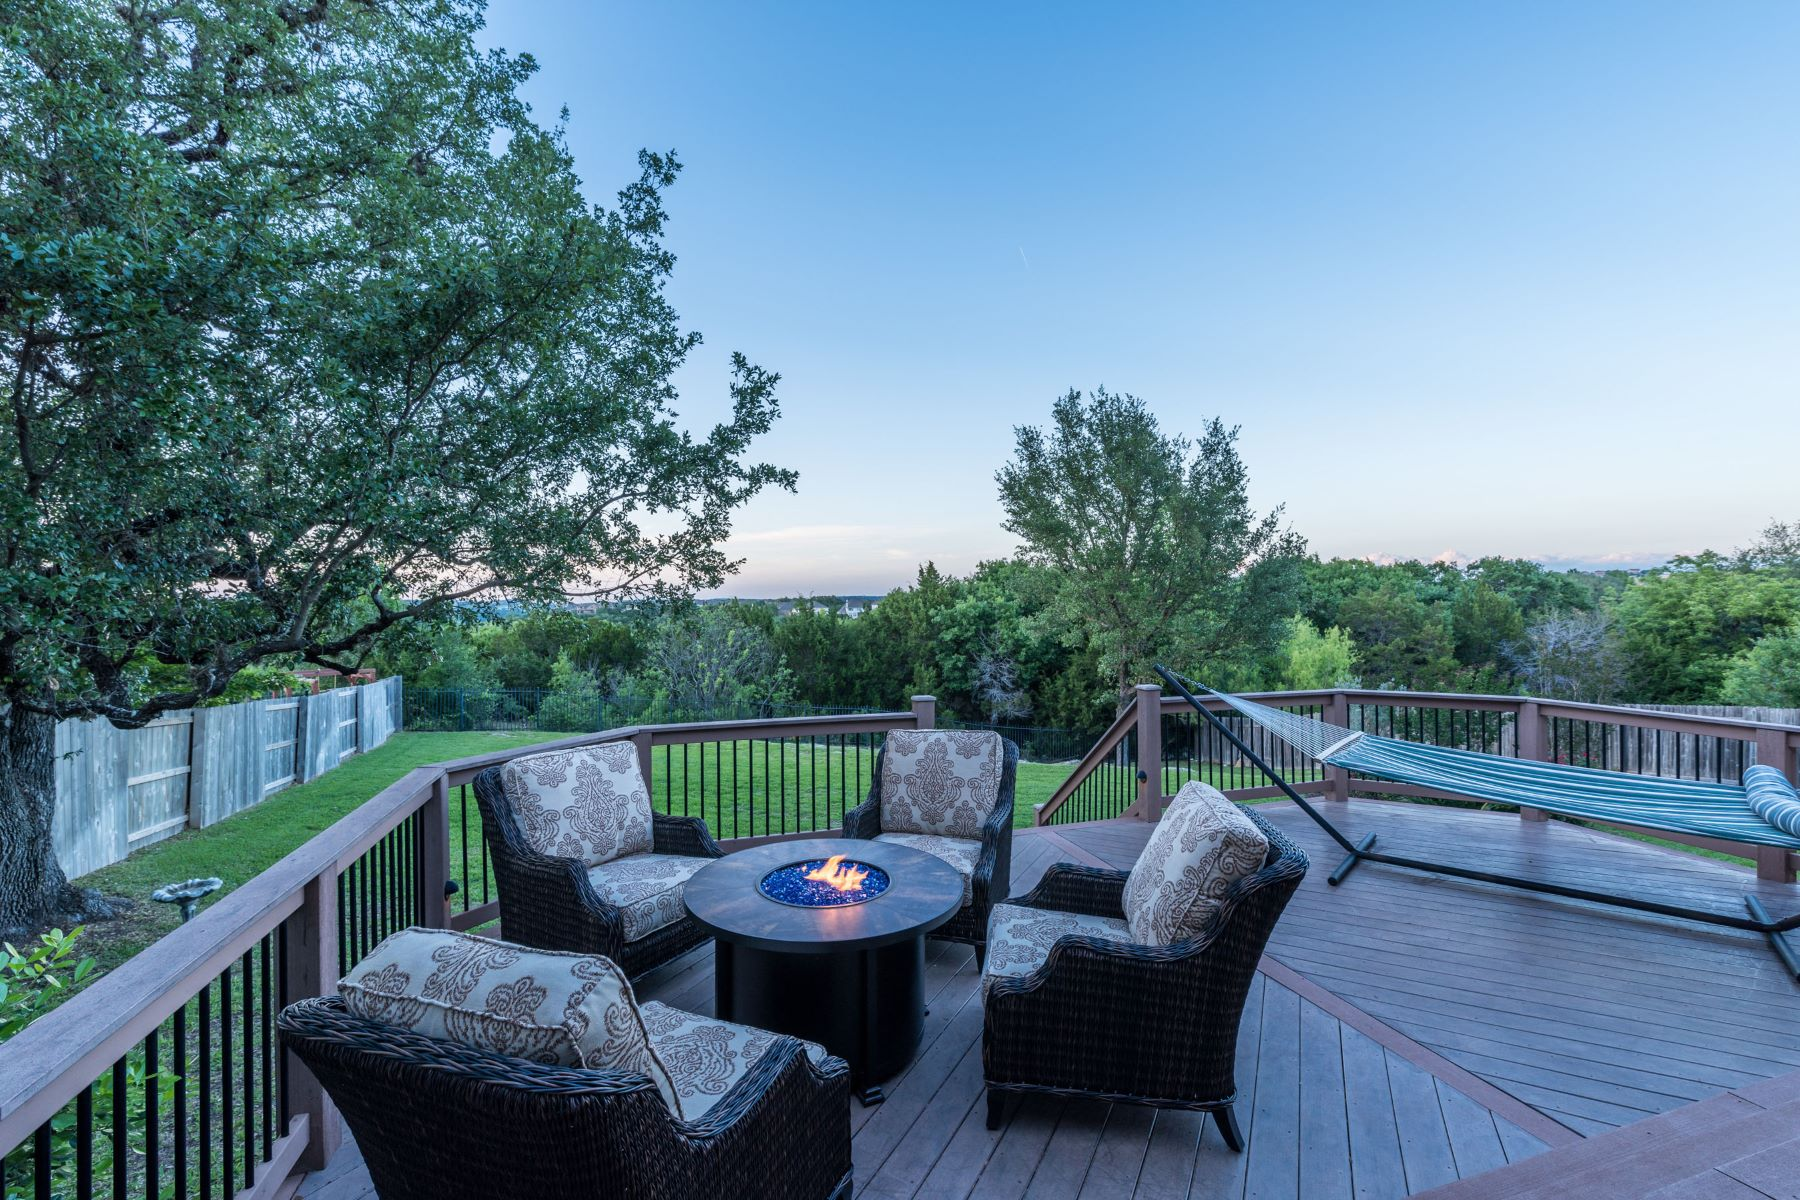 Single Family Home for Sale at Tranquility and Incredible Views 12816 Capella Trl Austin, Texas 78732 United States